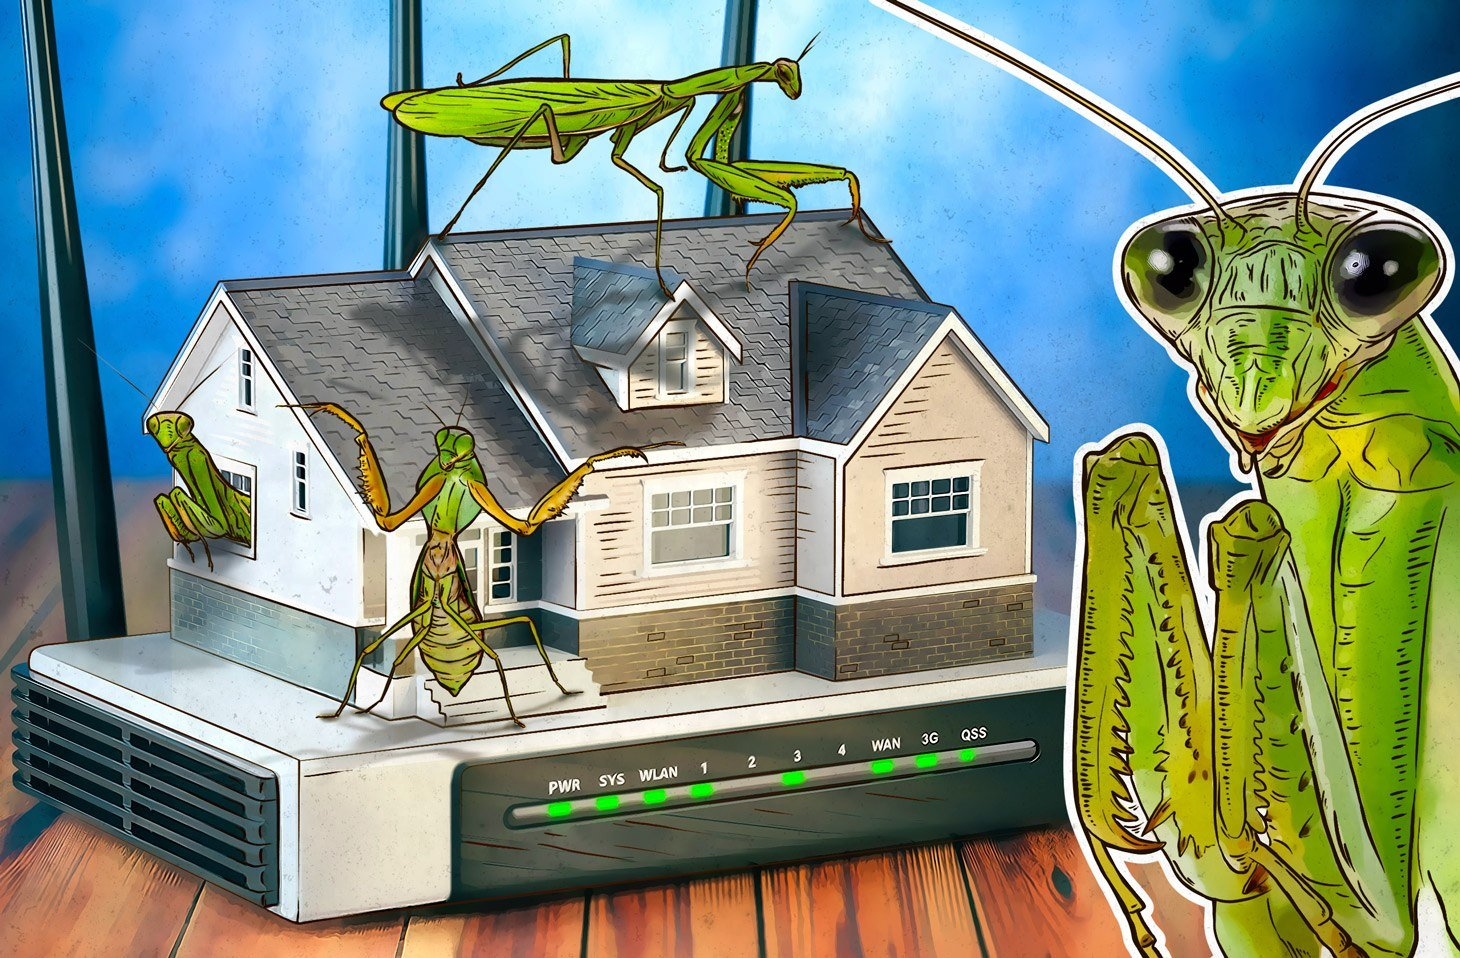 Roaming Mantis infects smartphones via wi-fi routers